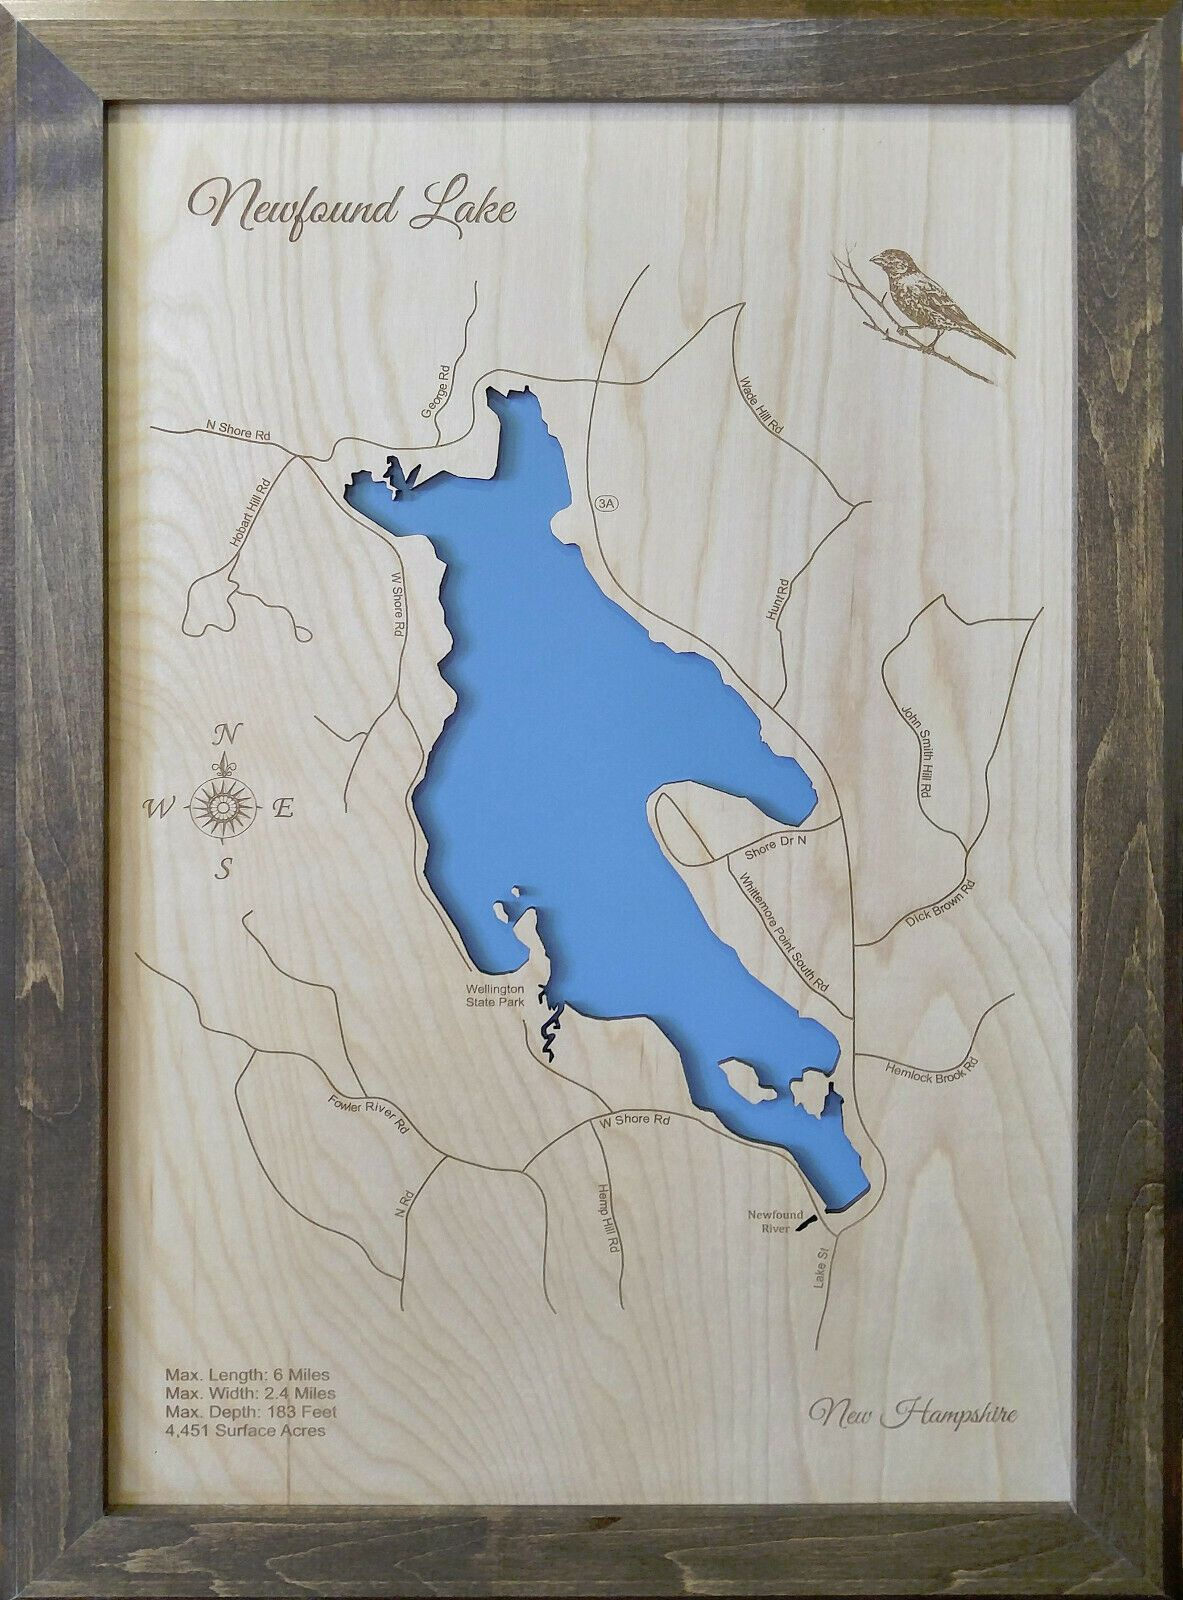 newfound lake nh map Pin On Visit New Hampshire Travel Guide newfound lake nh map